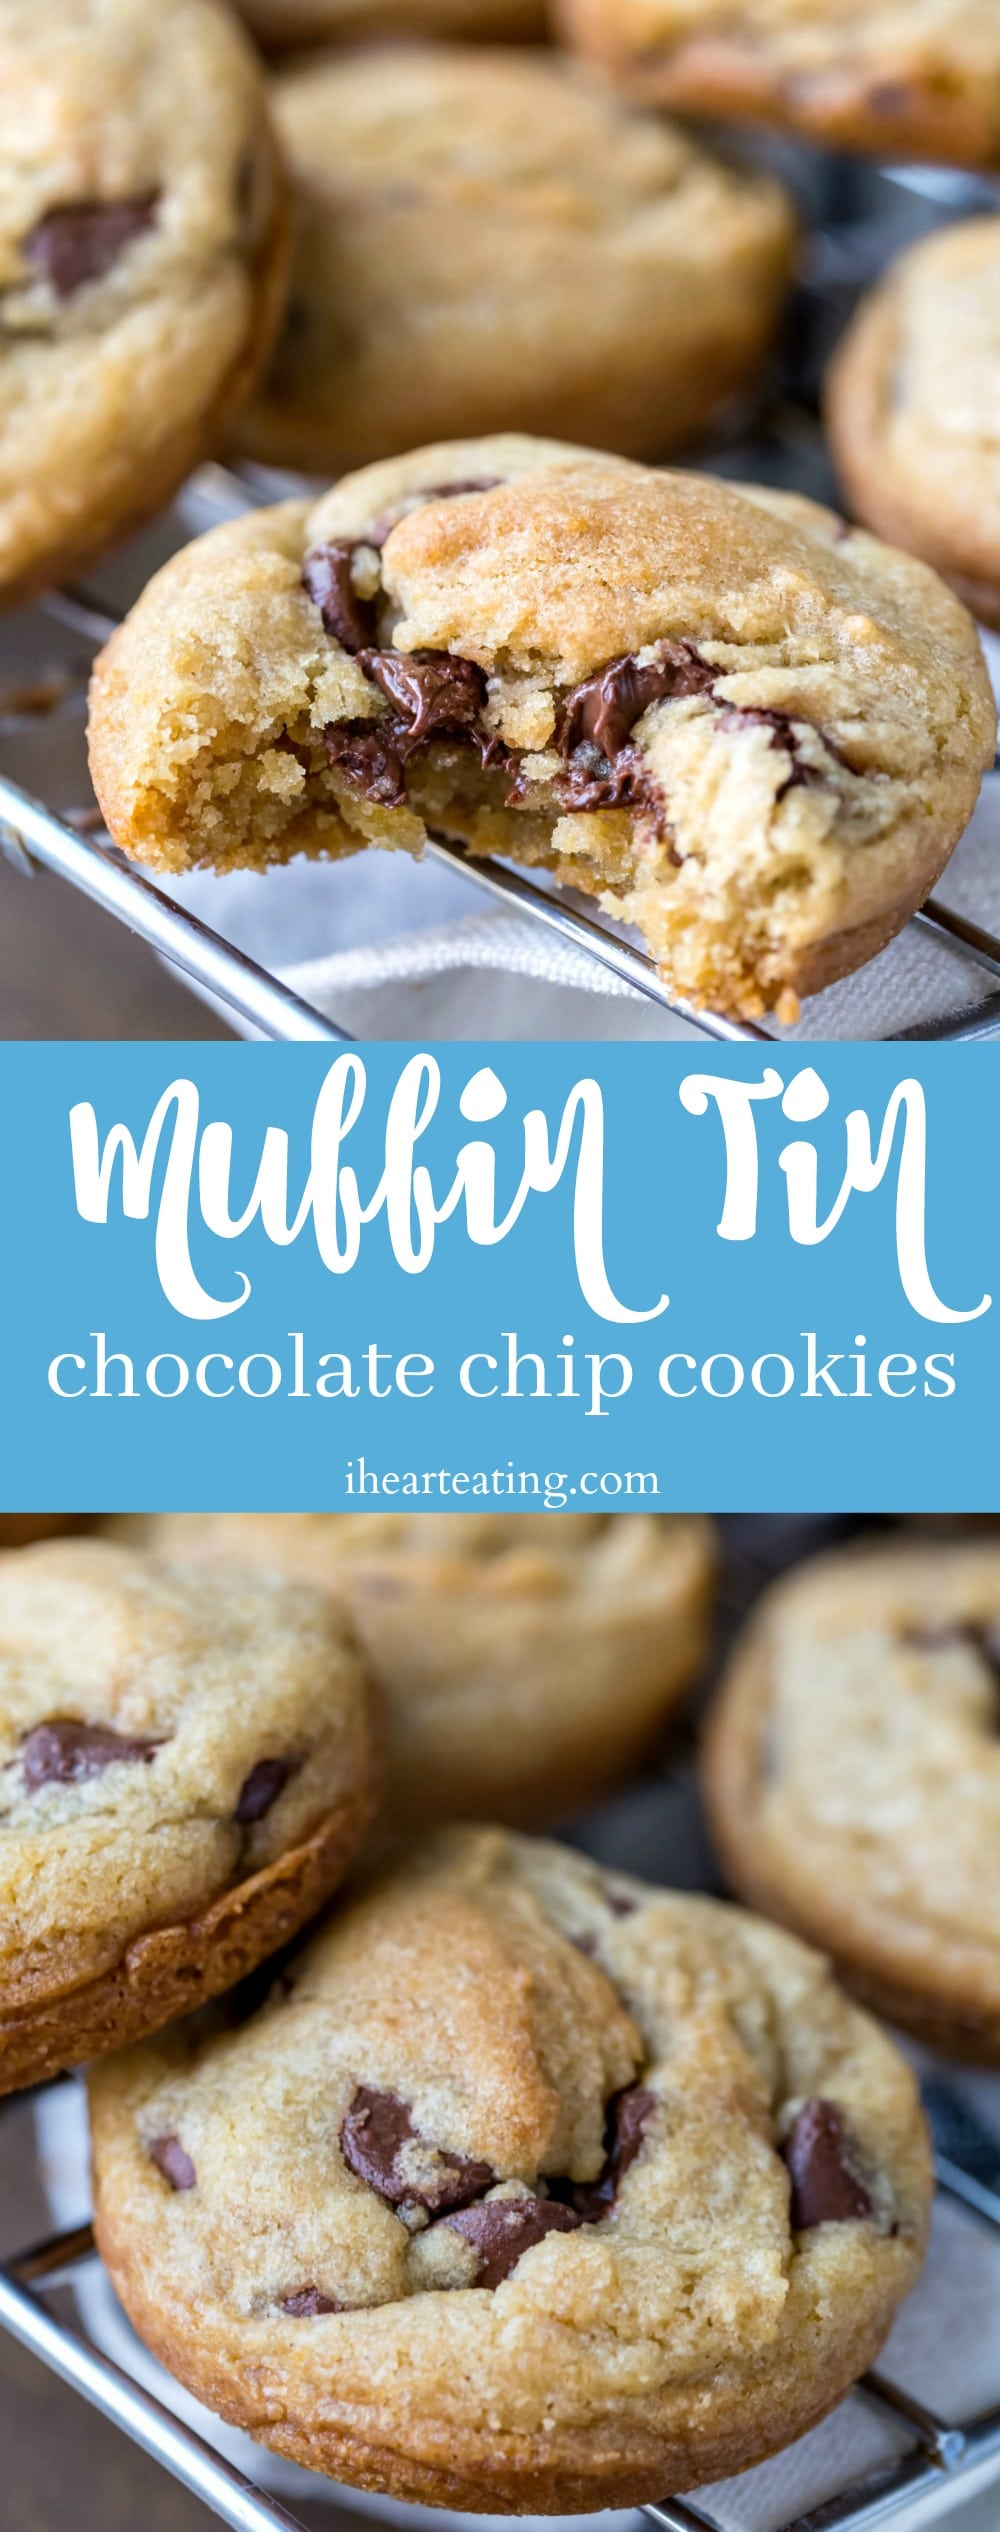 Easiest chocolate chip cookie recipe! These soft chocolate chip cookies are baked right in a muffin tin.